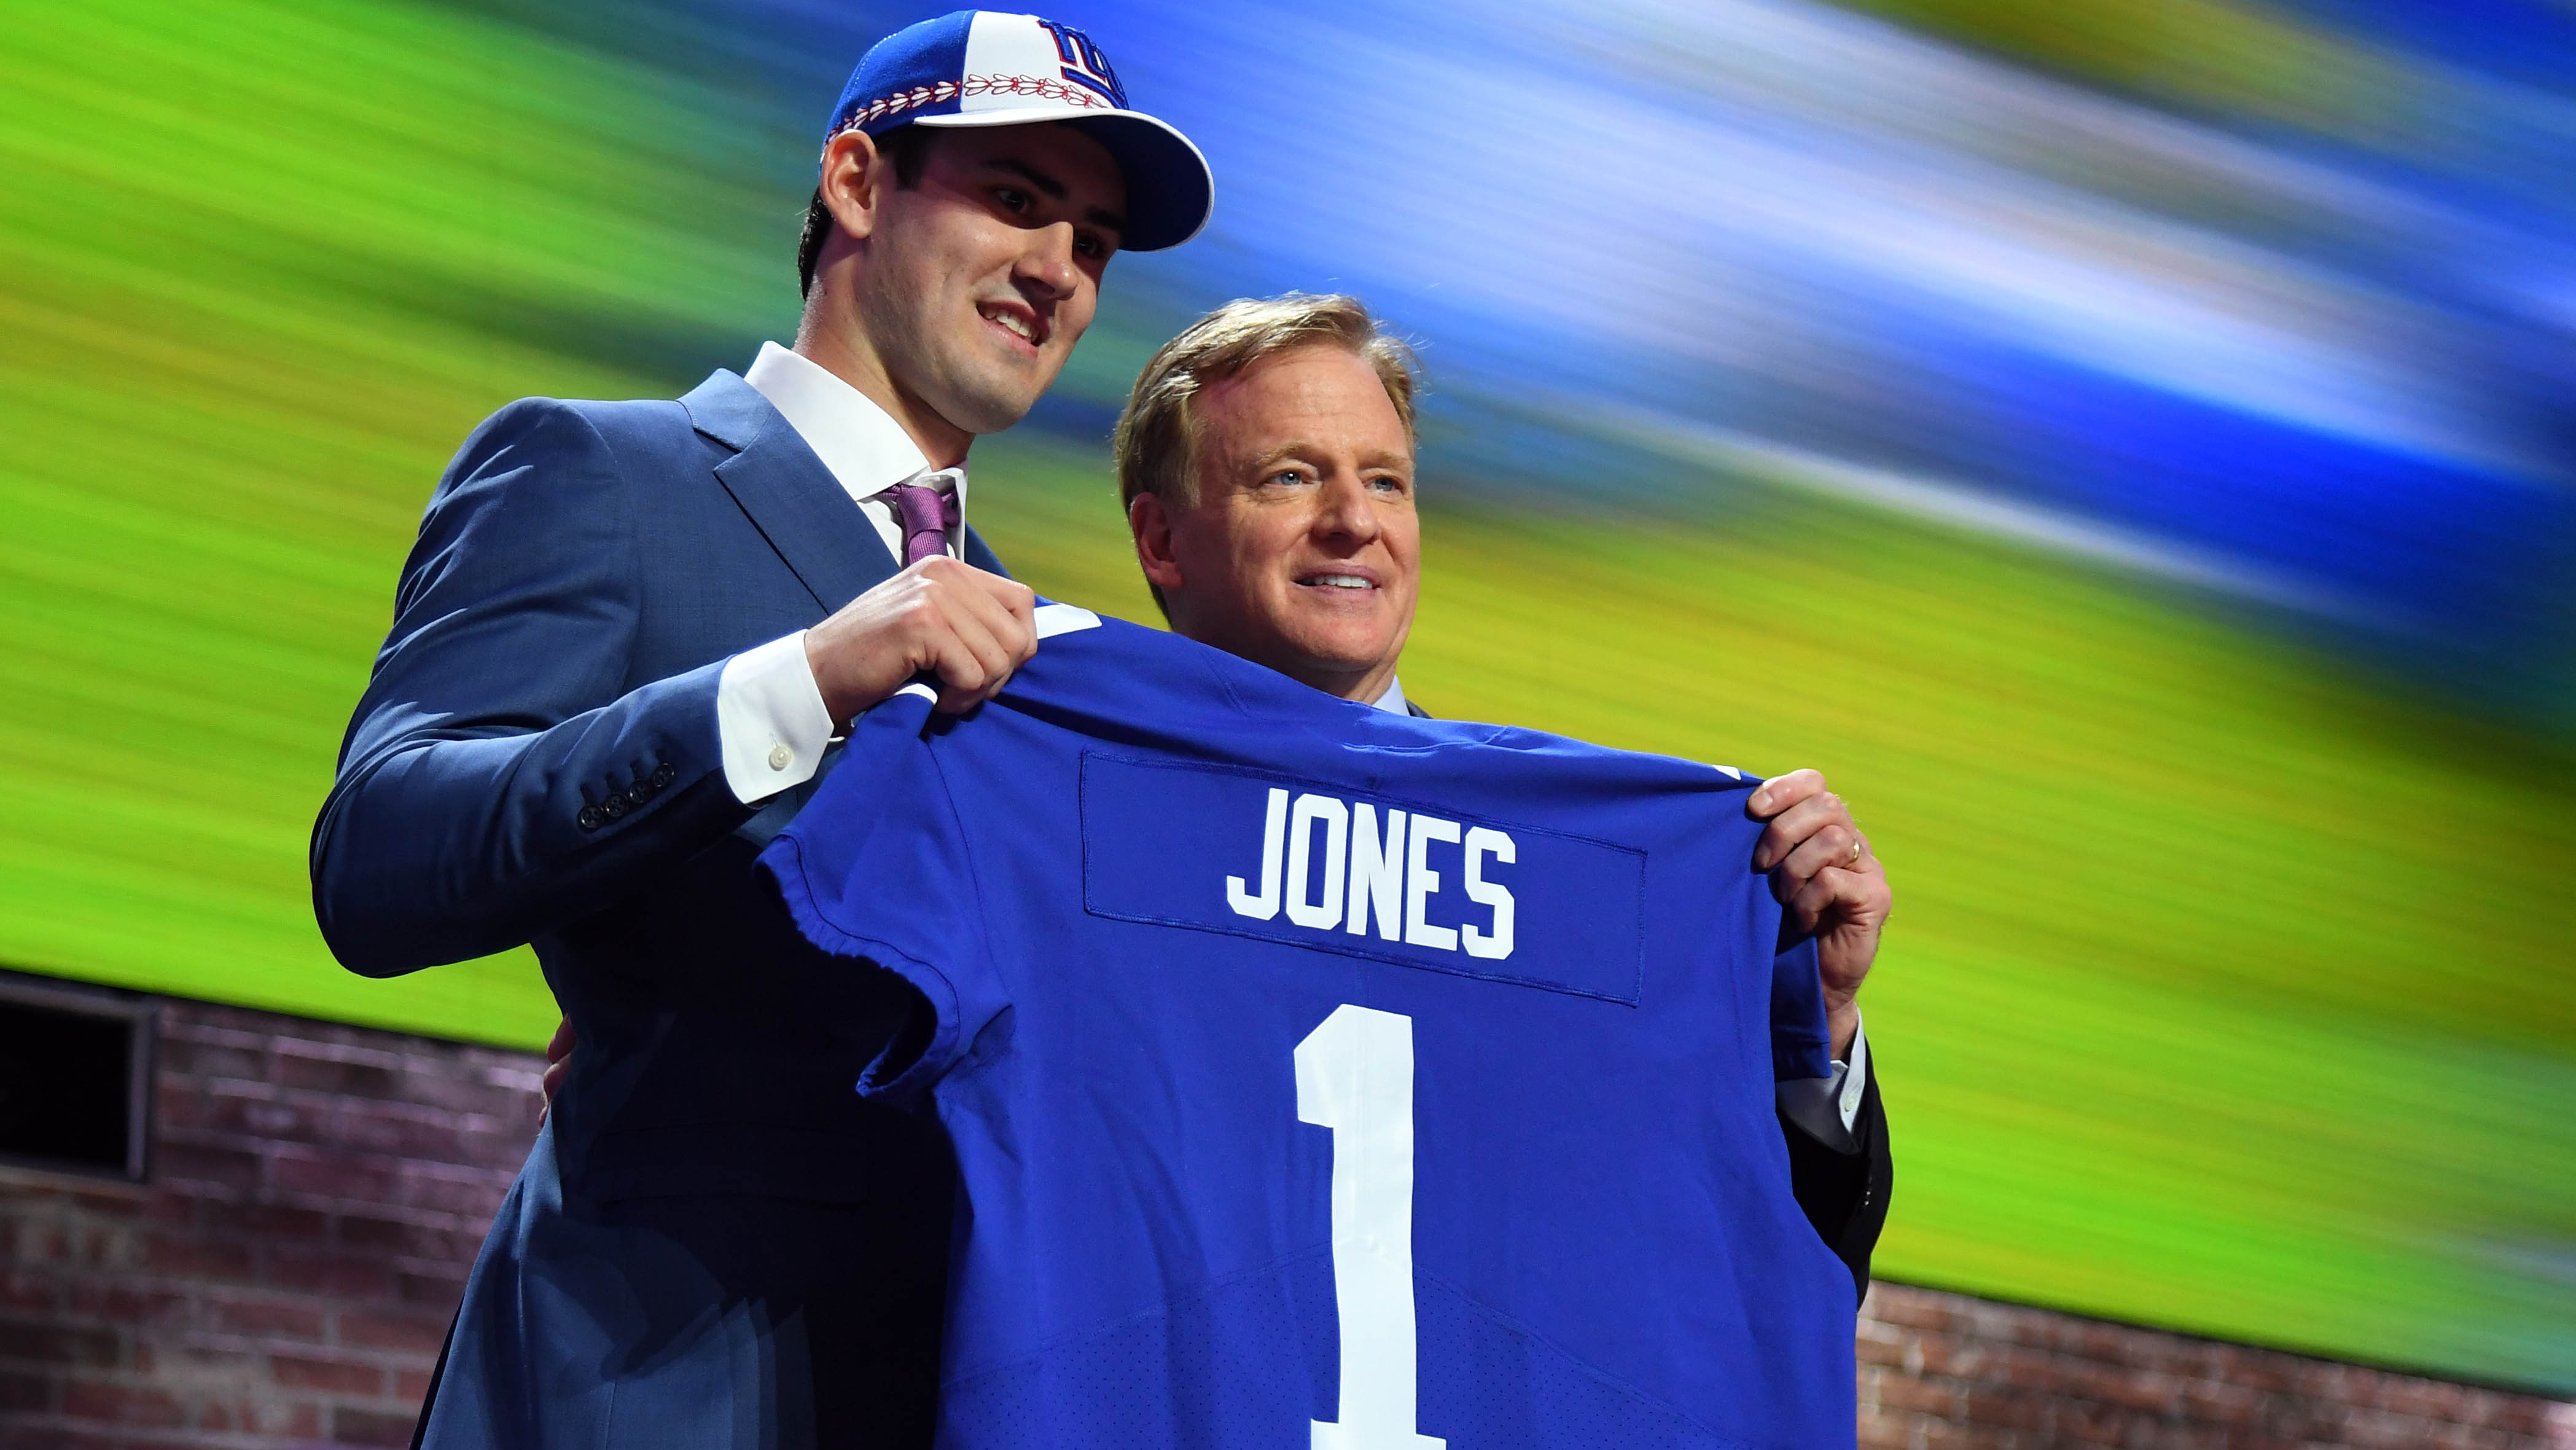 Jones Drafted by New York Giants in First Round - Duke